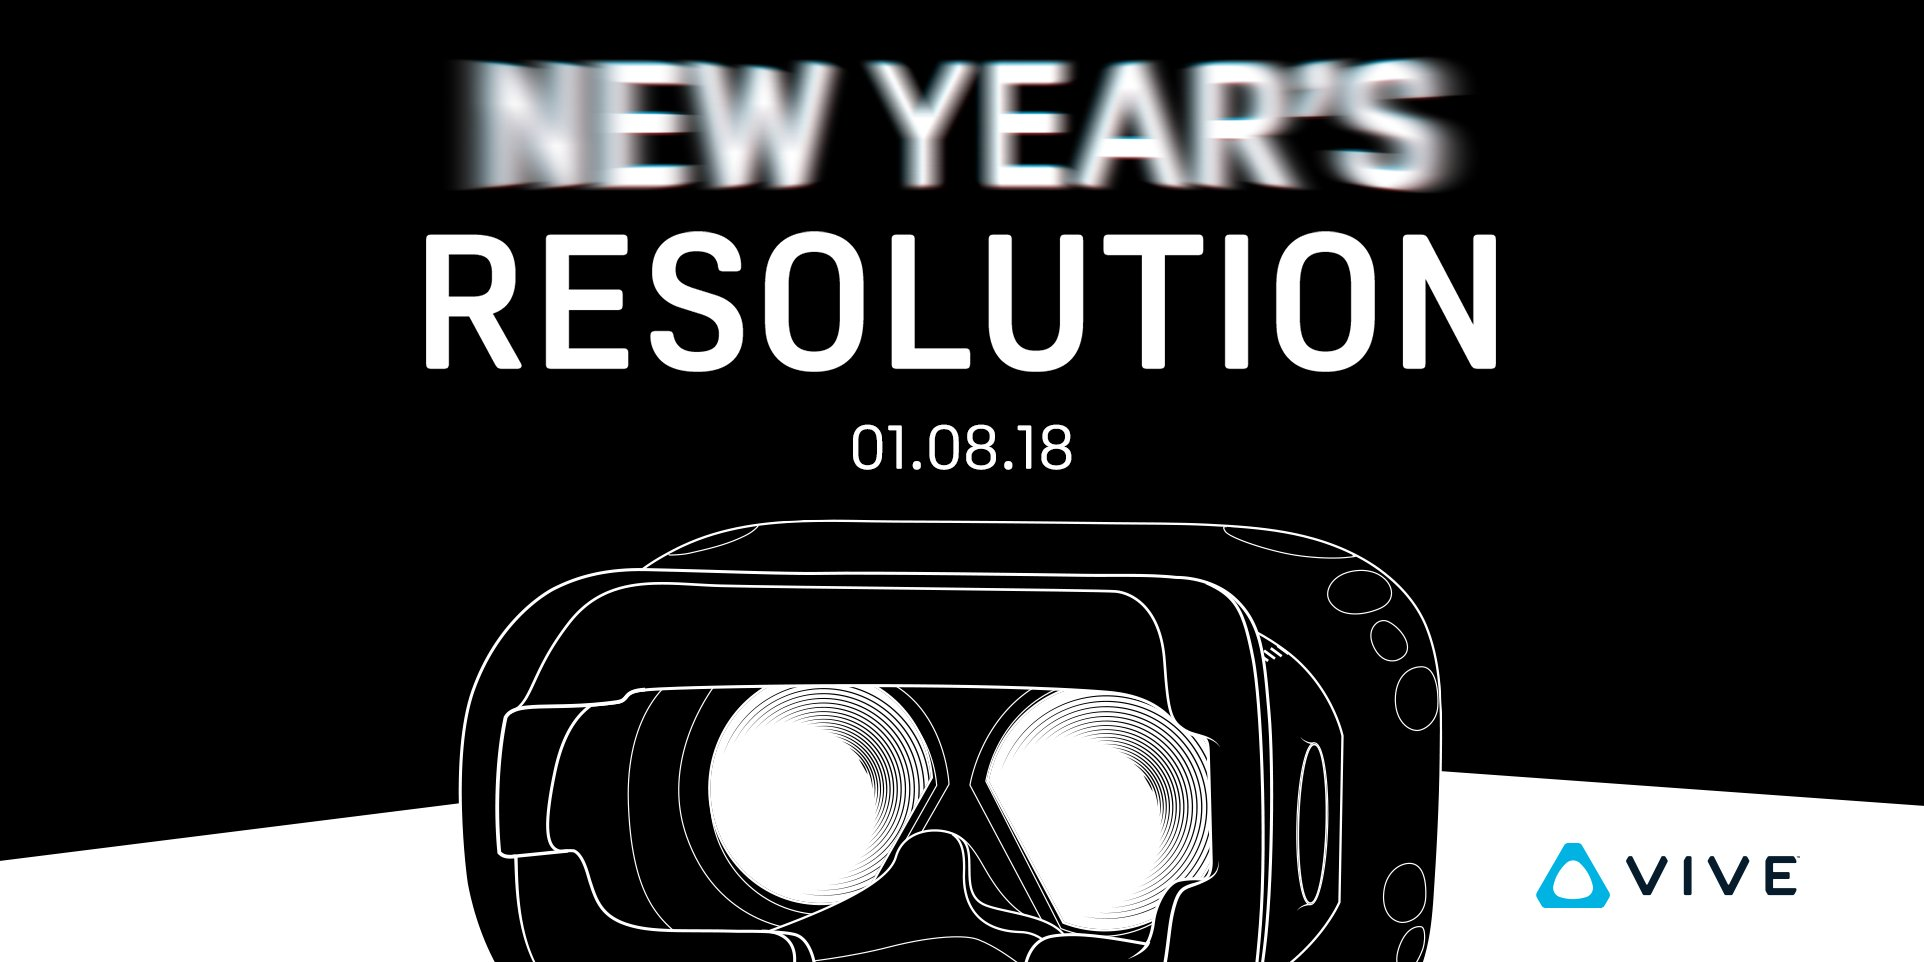 HTC Will Be Sharing Important Resolution Updates For The Vive Display At CES 2018